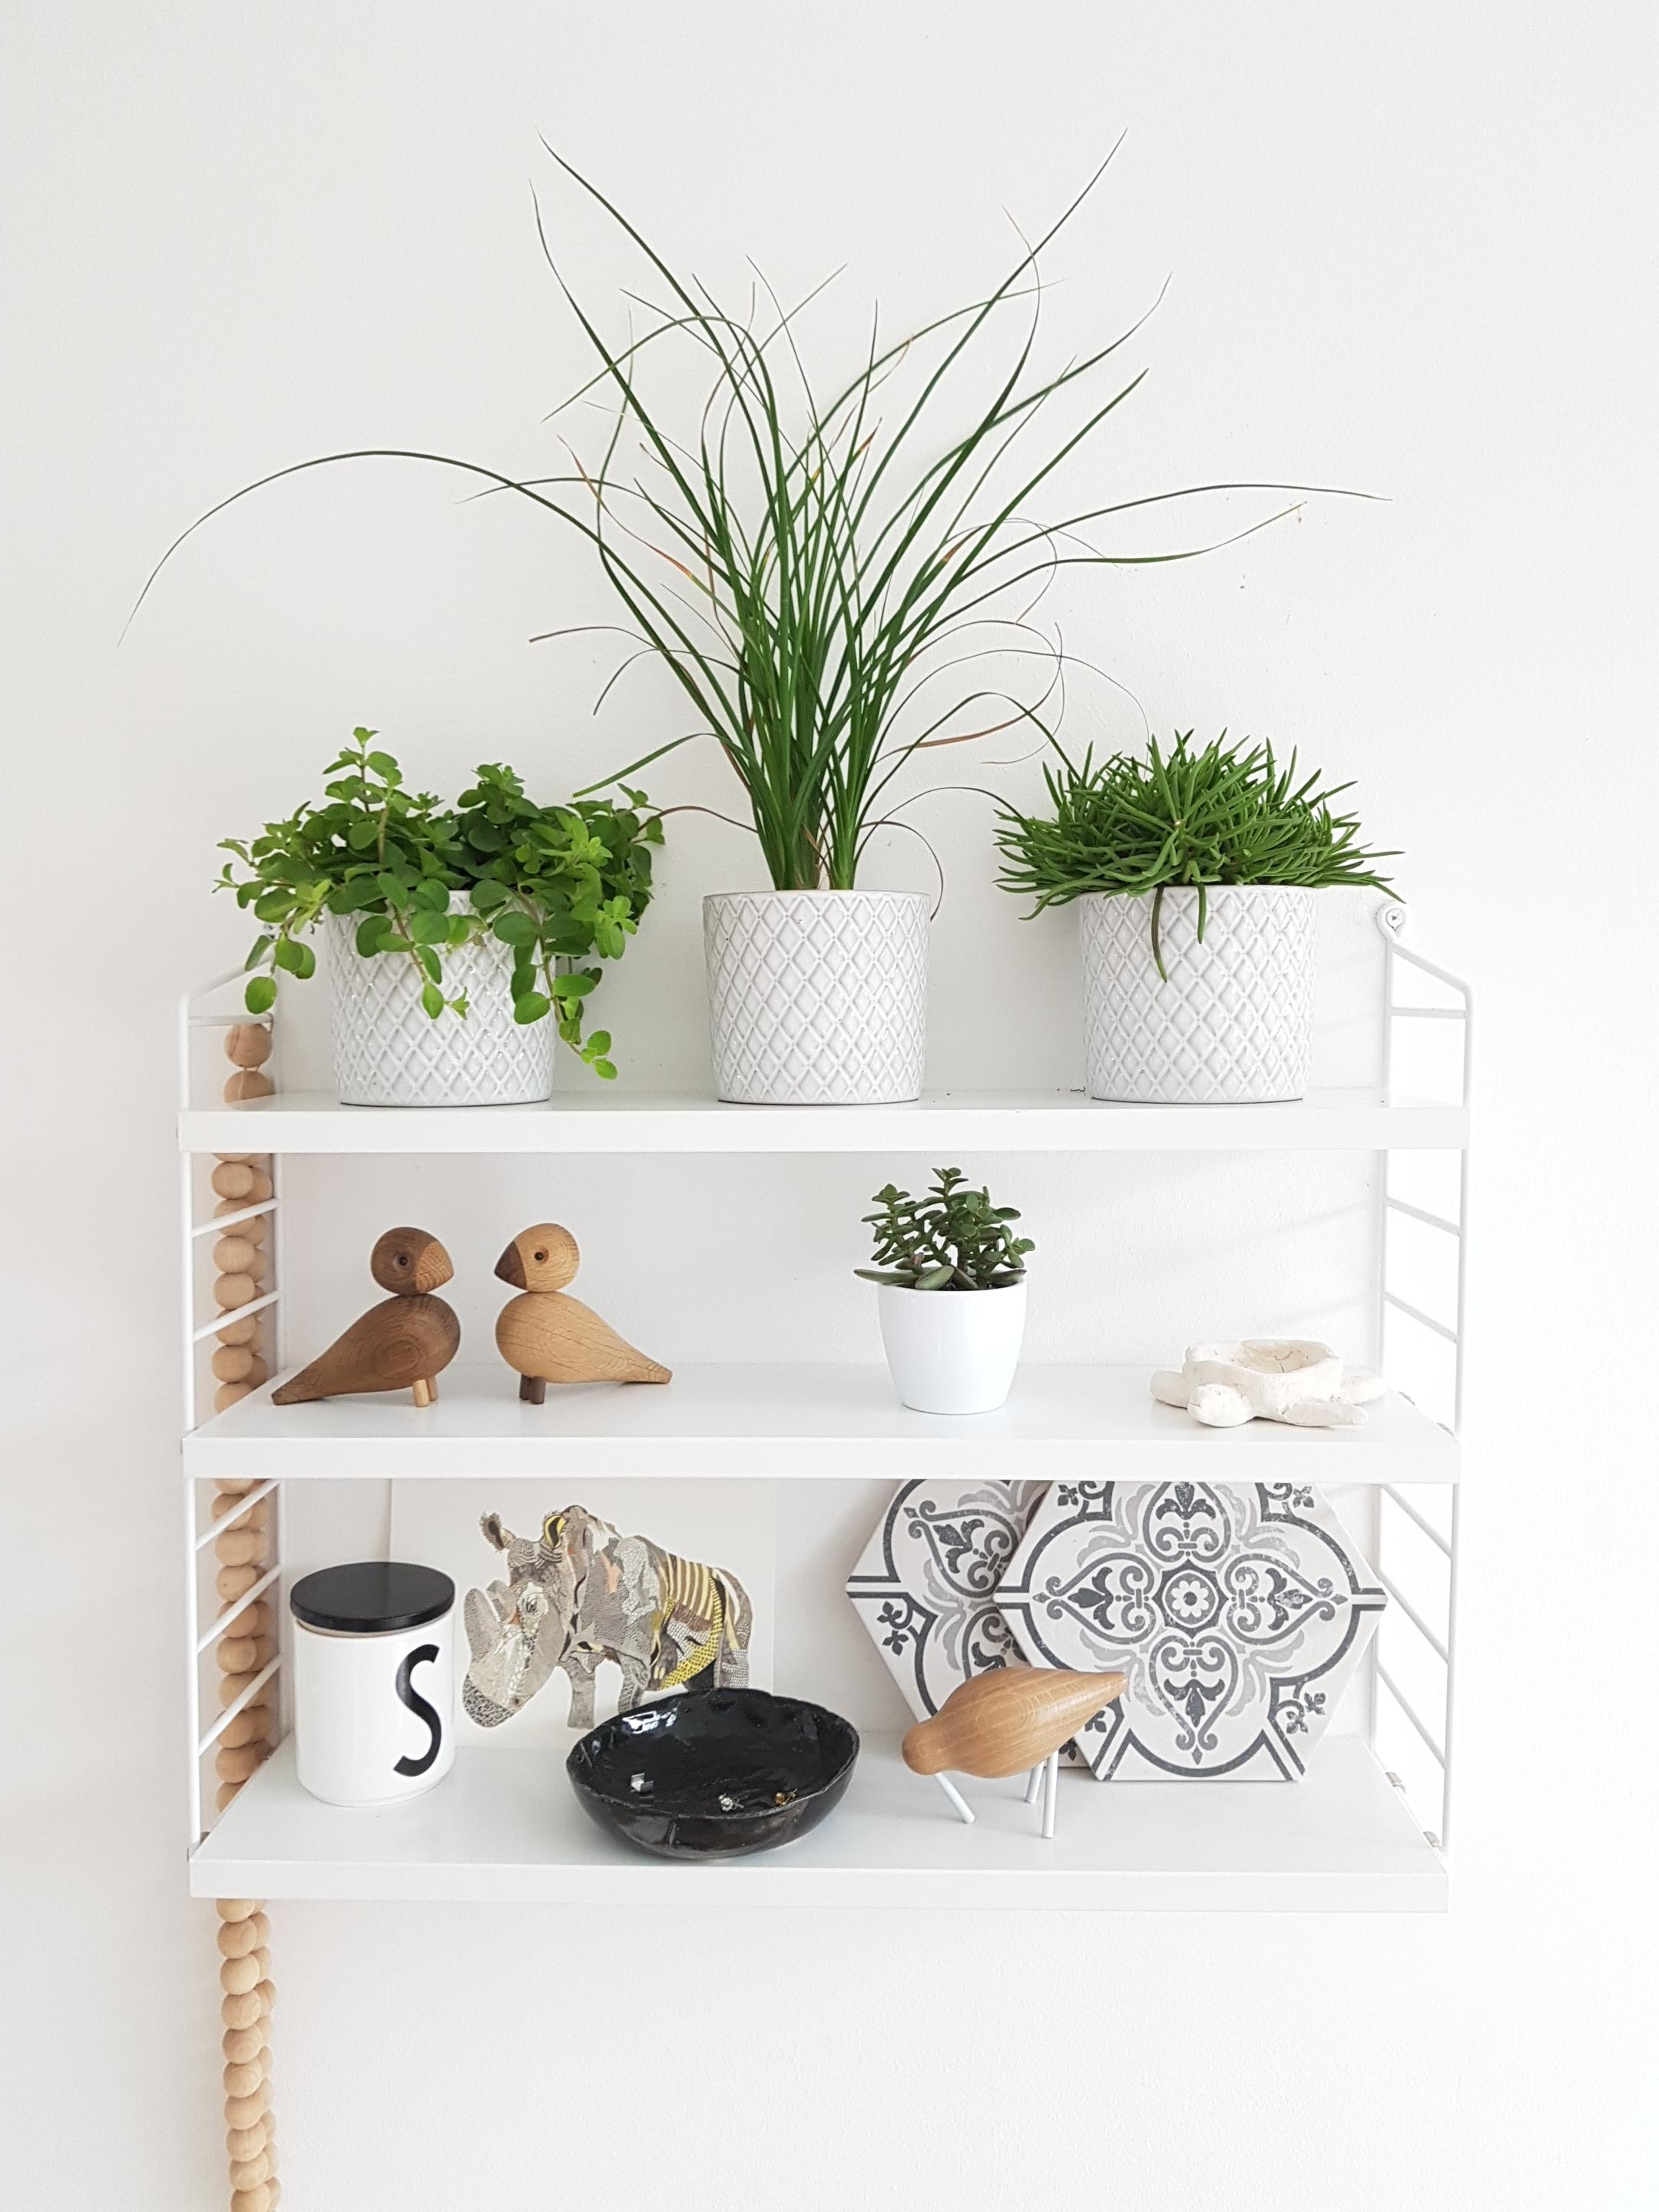 Immer wieder anders dekoriert - das #string Regal. #shelfie #shelf #deko #whiteliving #scandi